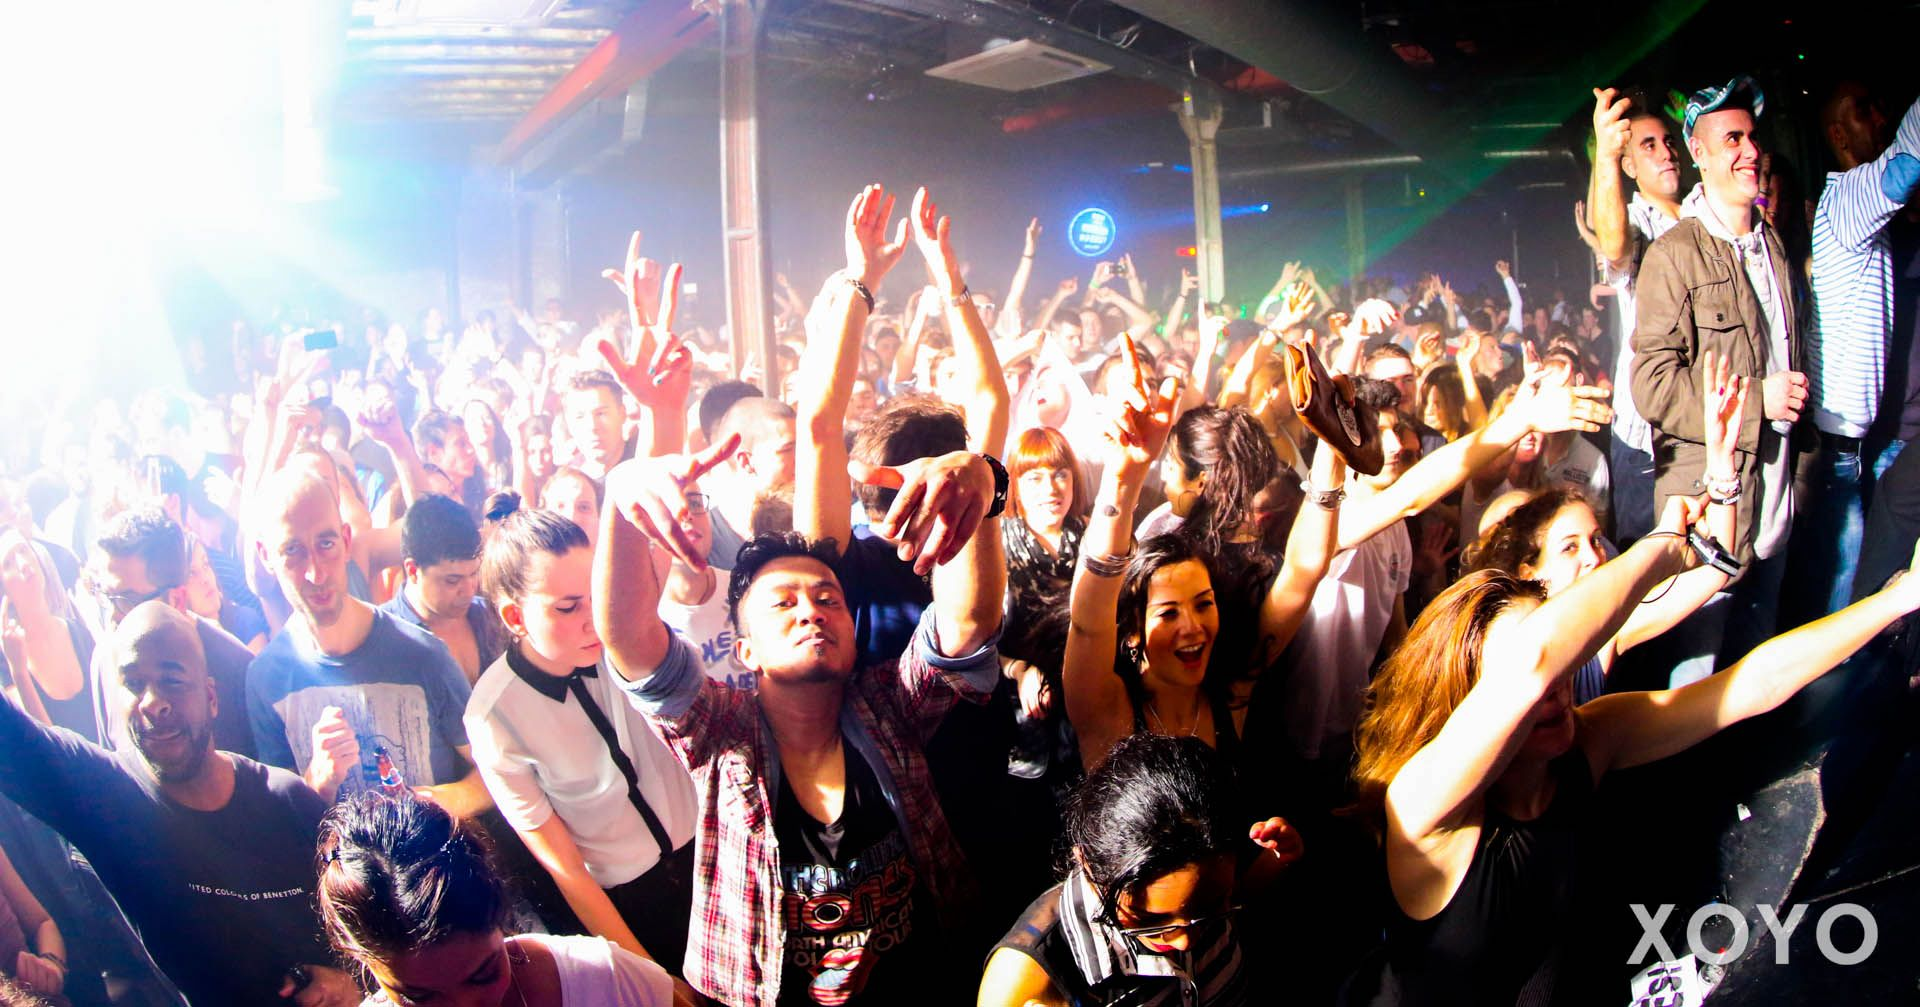 Best Nightclubs In London - XOYO